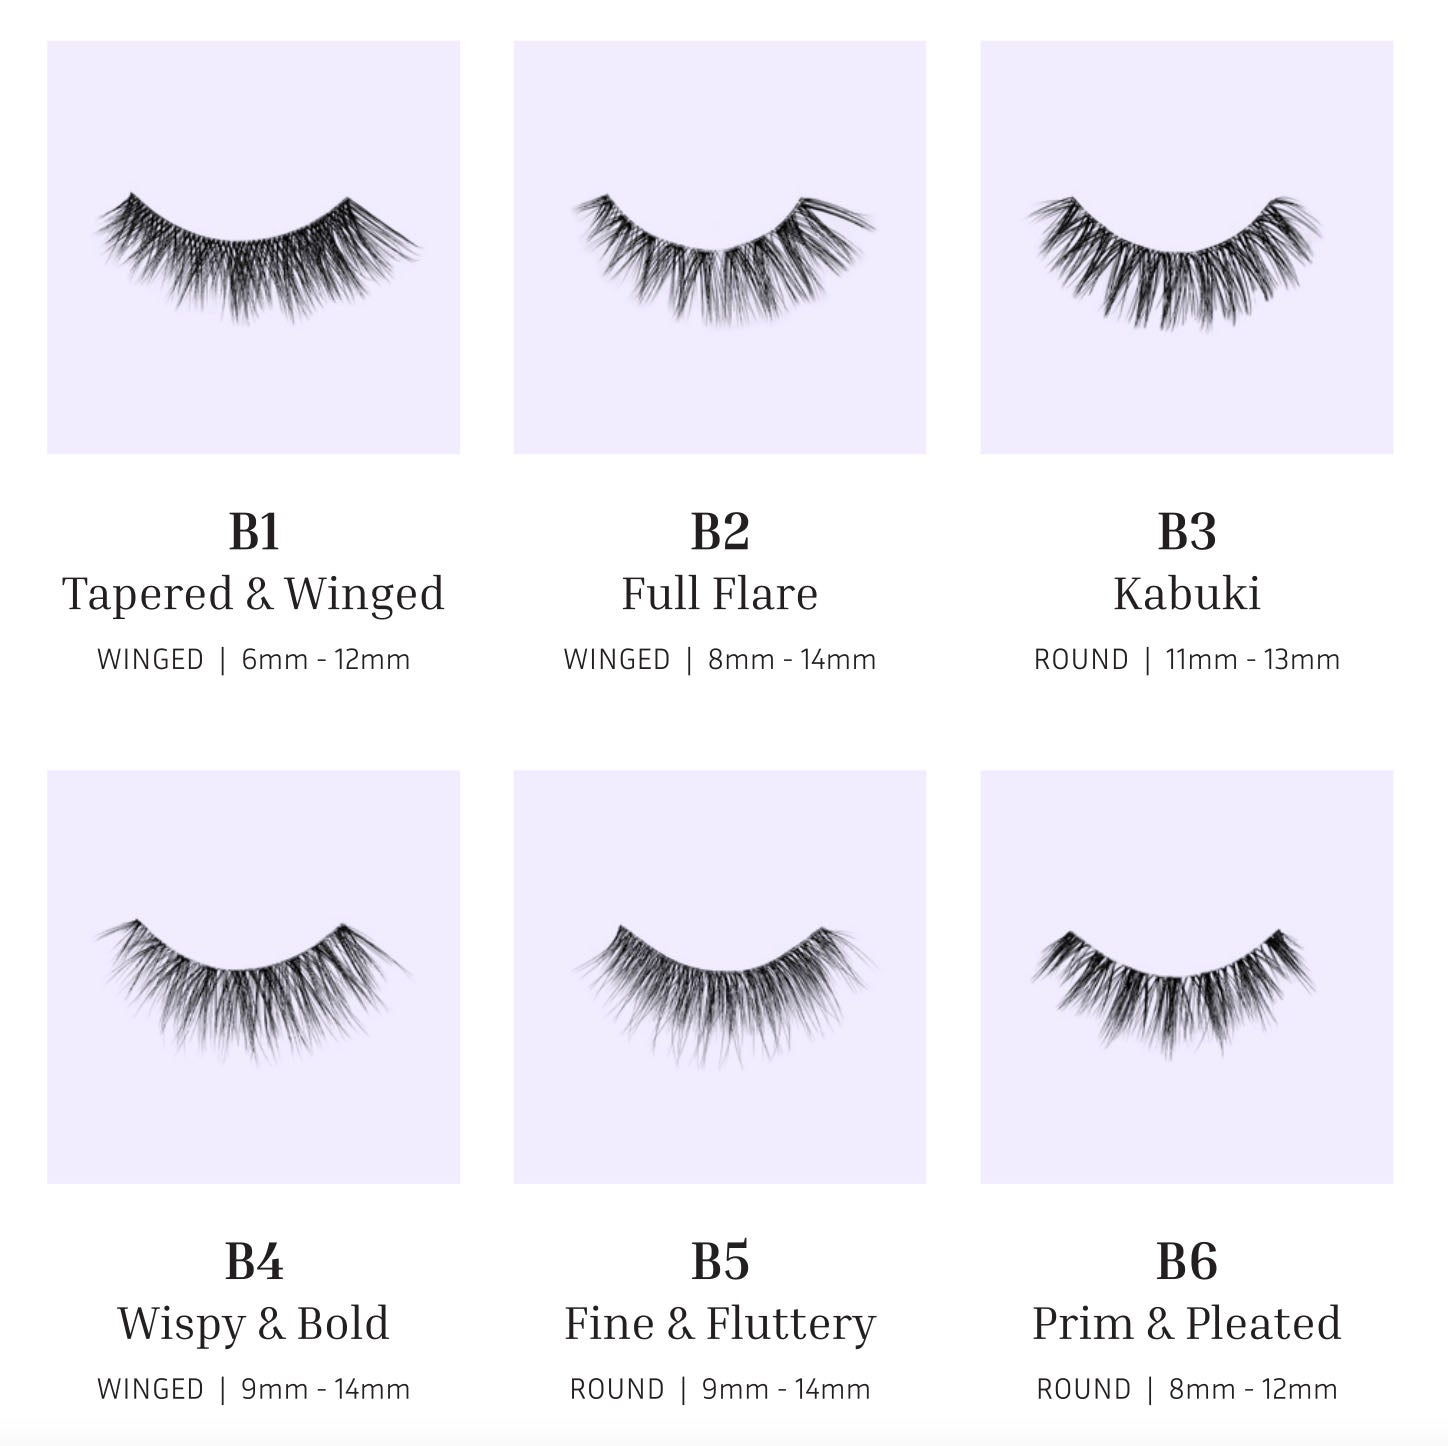 New Bold Collection Lash Styles   Lithe Lashes